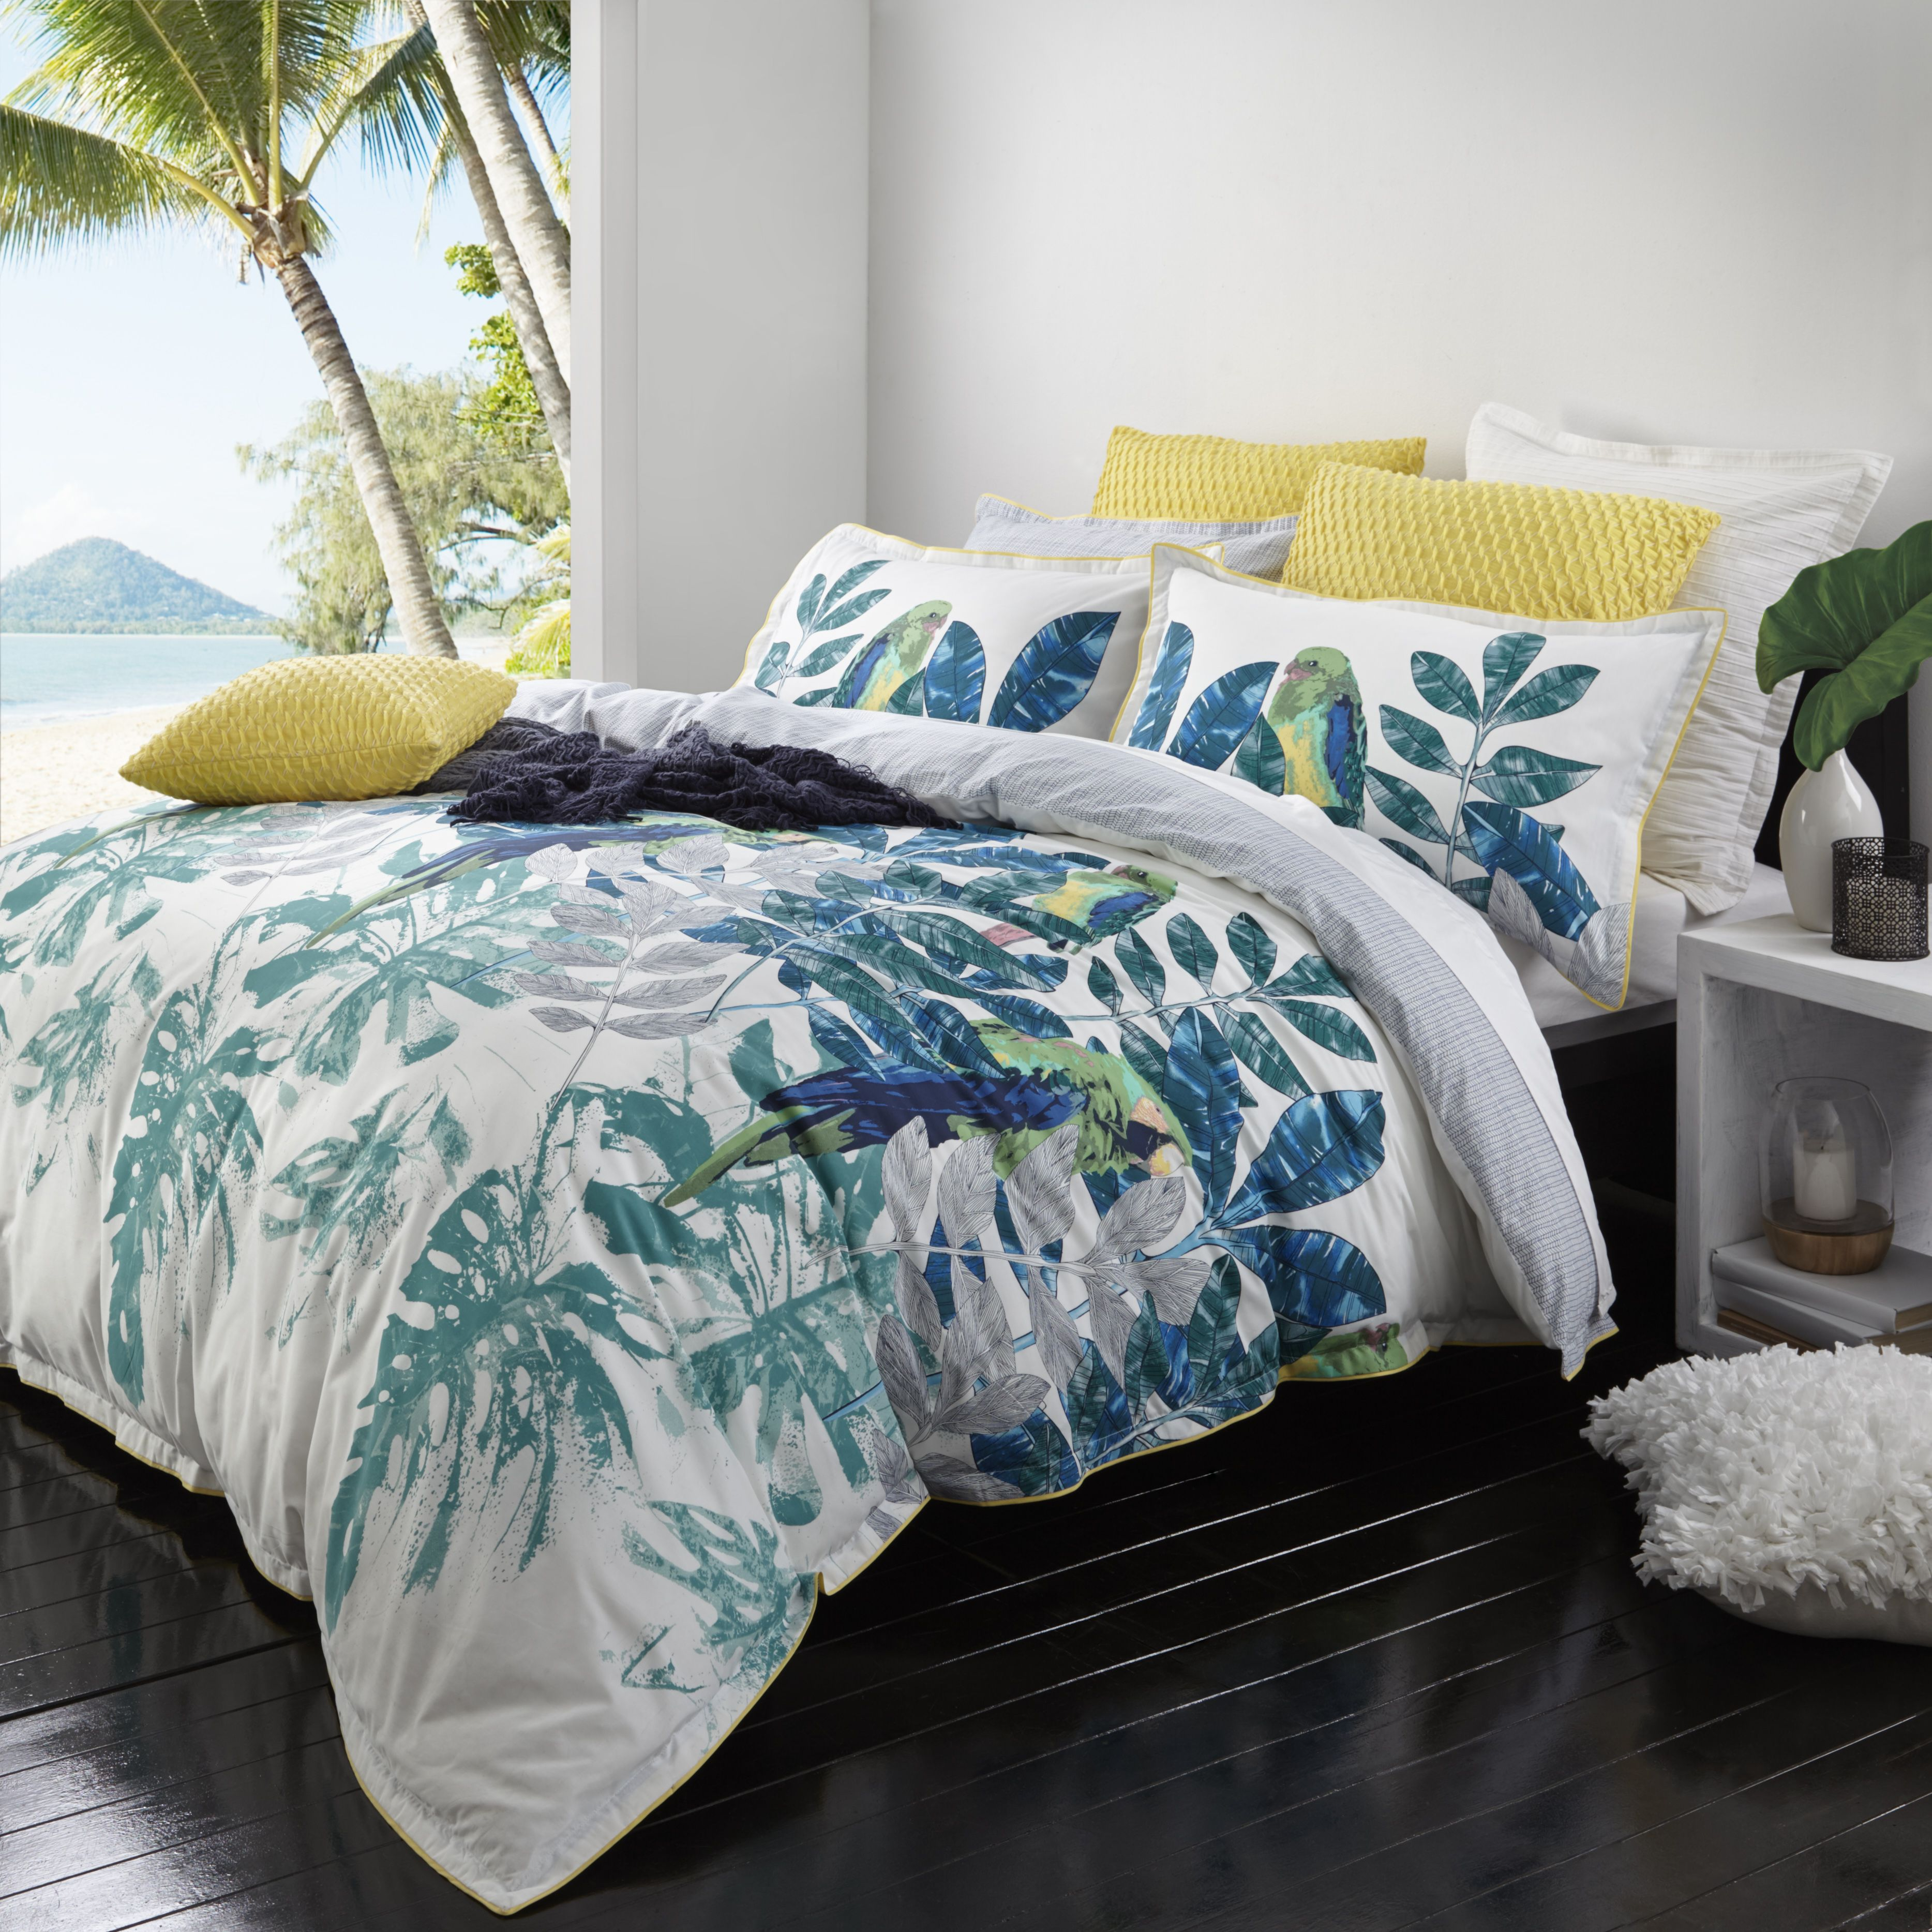 Daintree Fern by Logan & Mason. Available in queen and